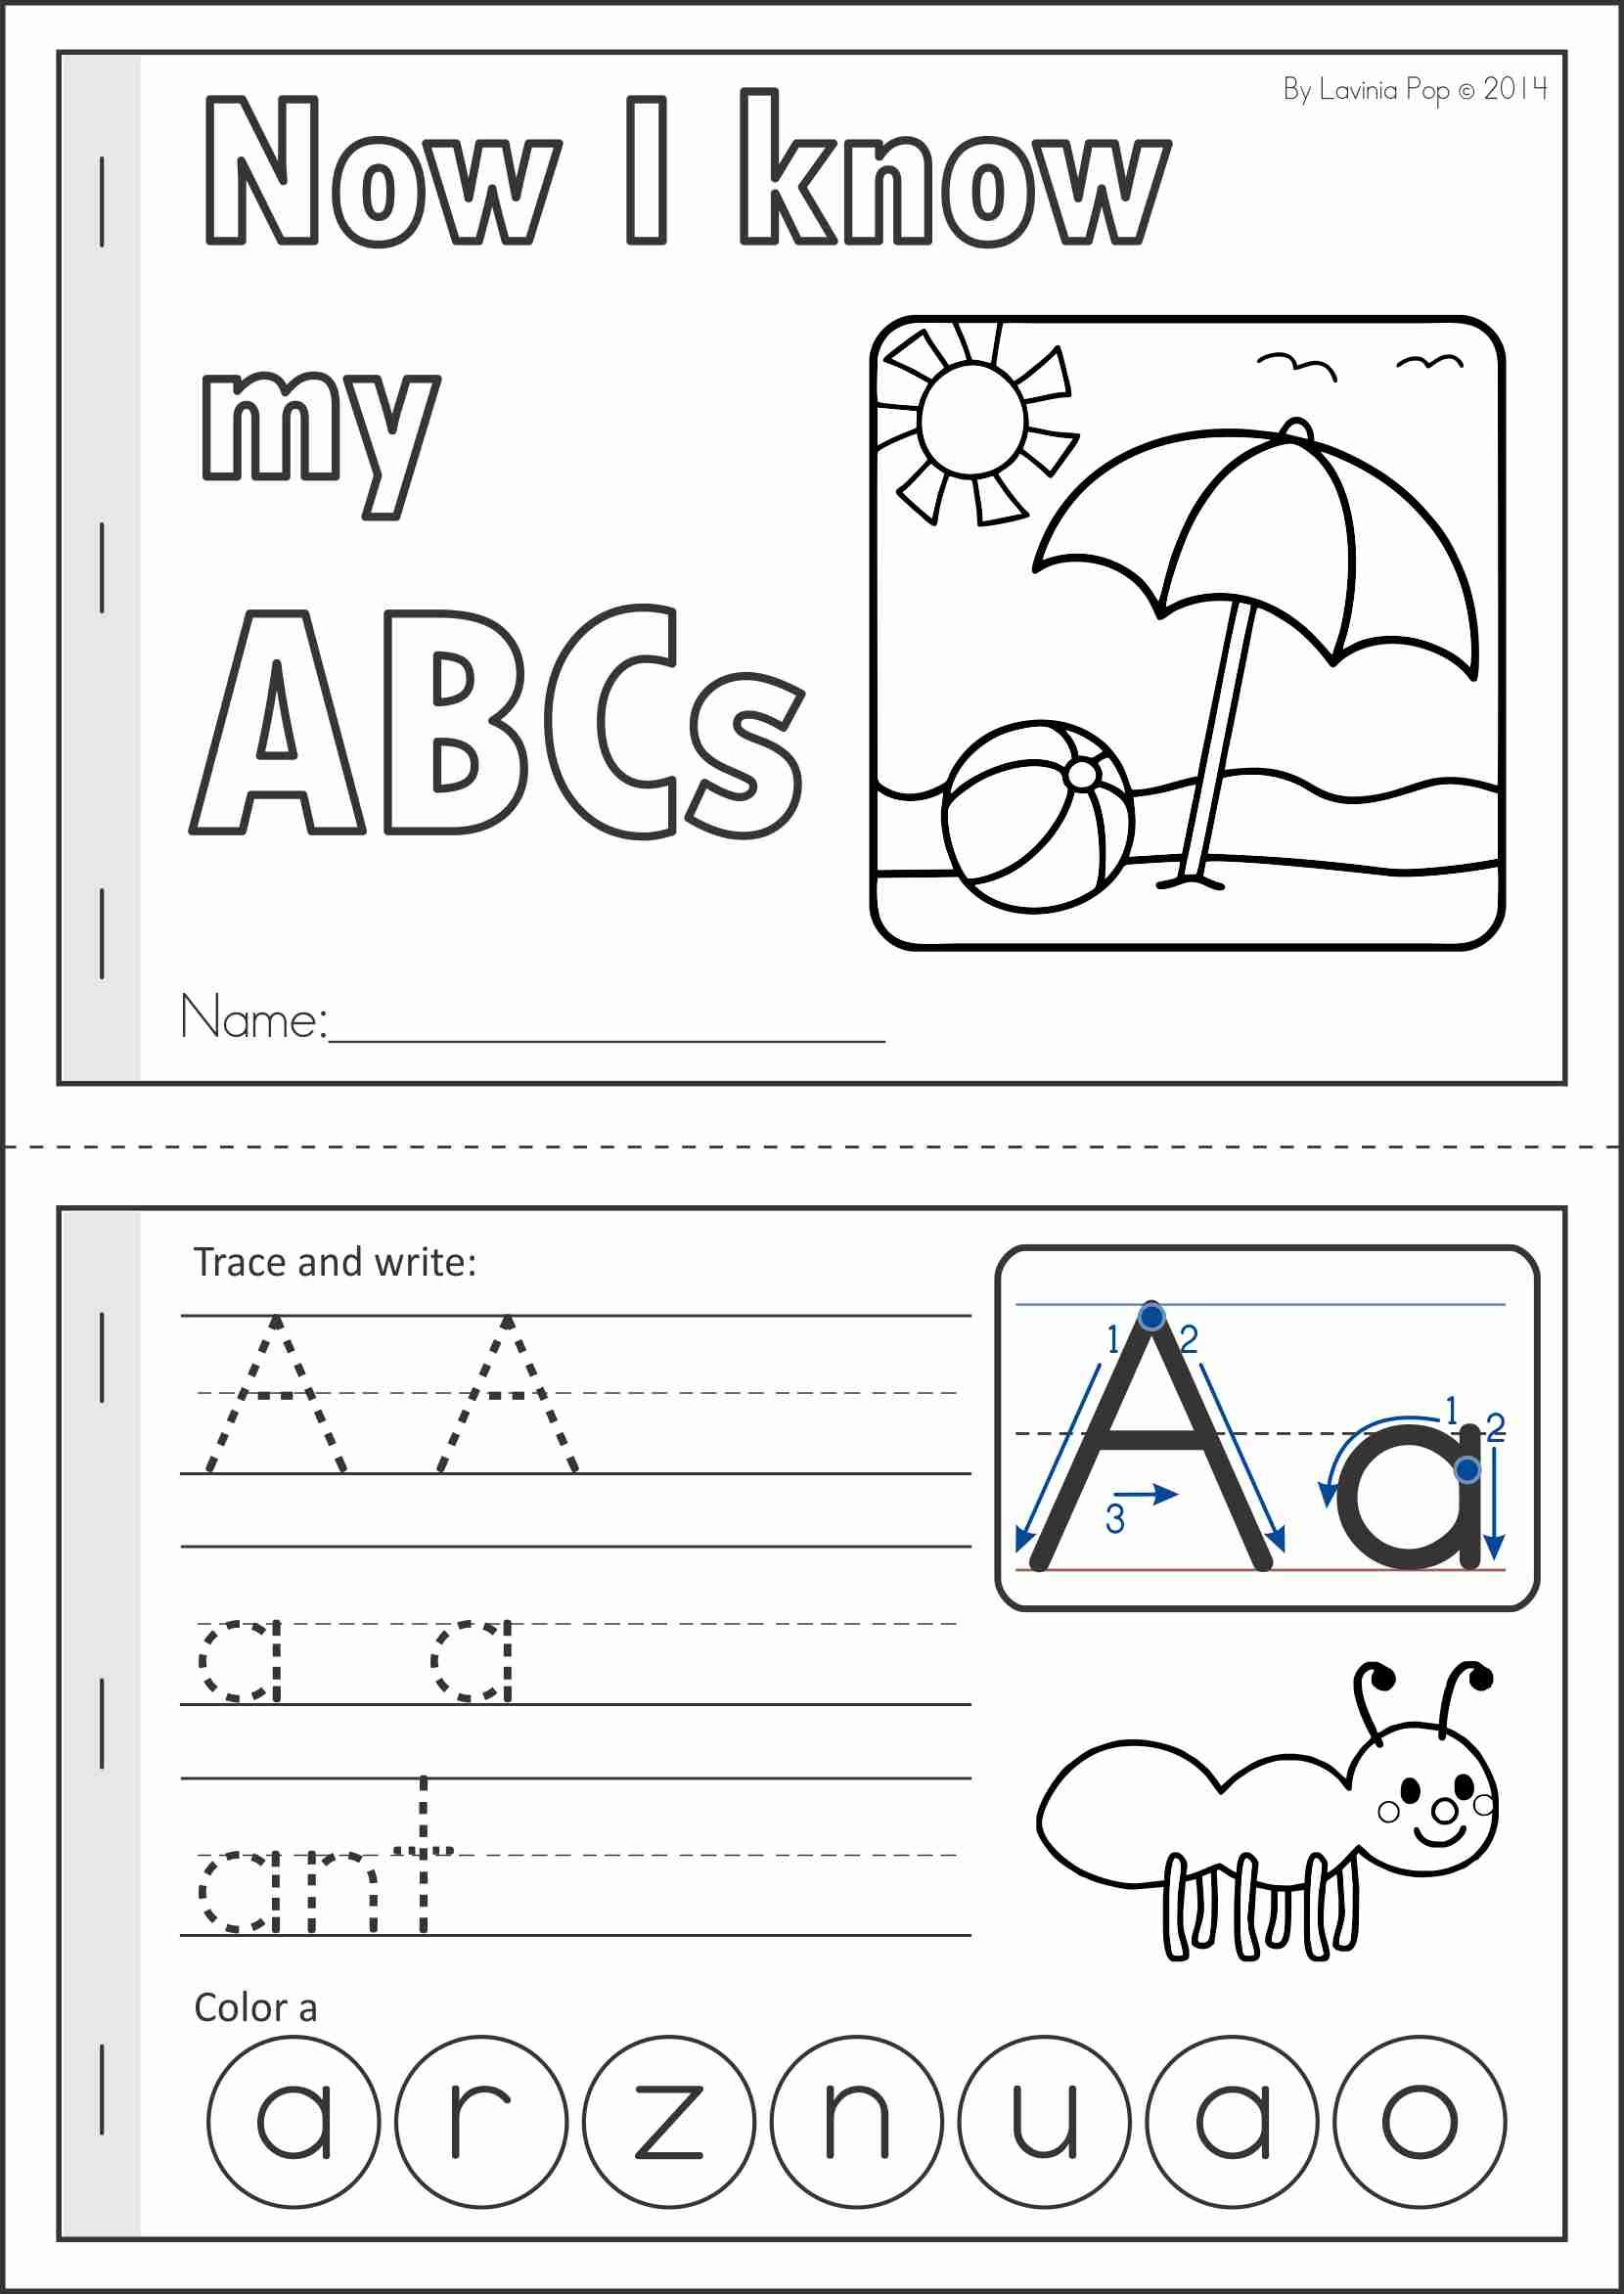 Get To Know You Worksheet Preschool